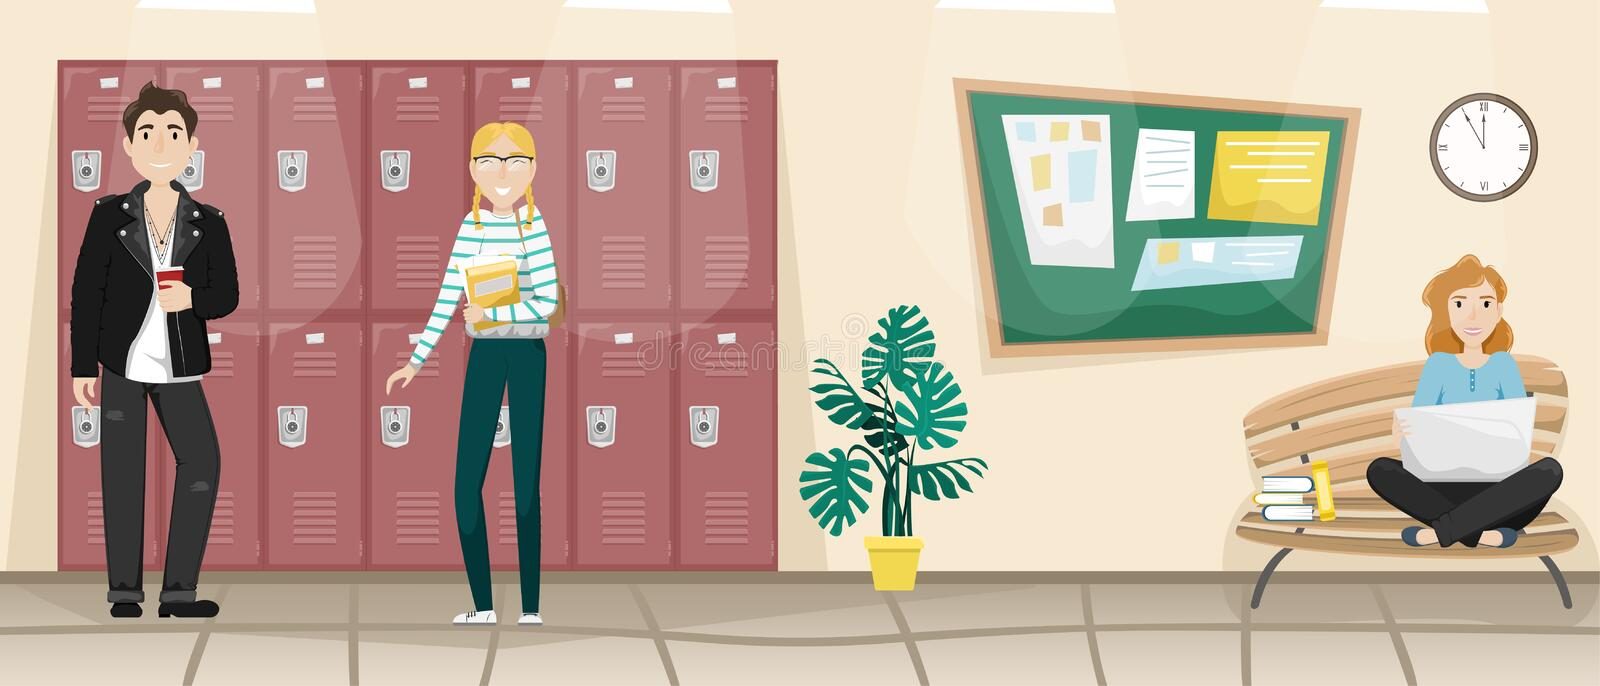 School corridor with lockers for books and clothes. Blackboard for school announcements. Students at recess. Flat vector isolated illustration vector illustration